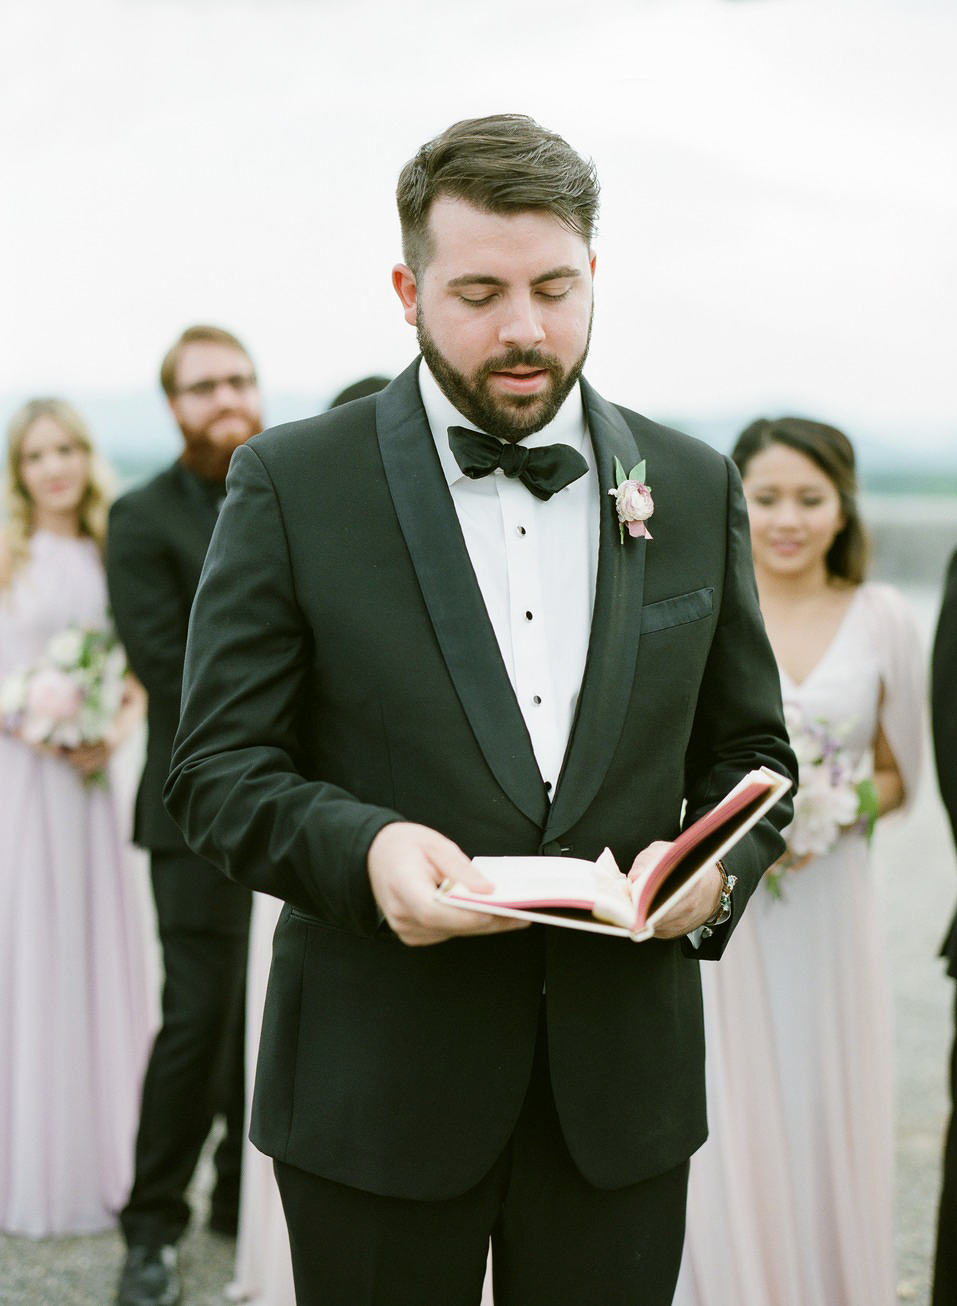 What Should a Wedding Officiant Wear to the Ceremony?